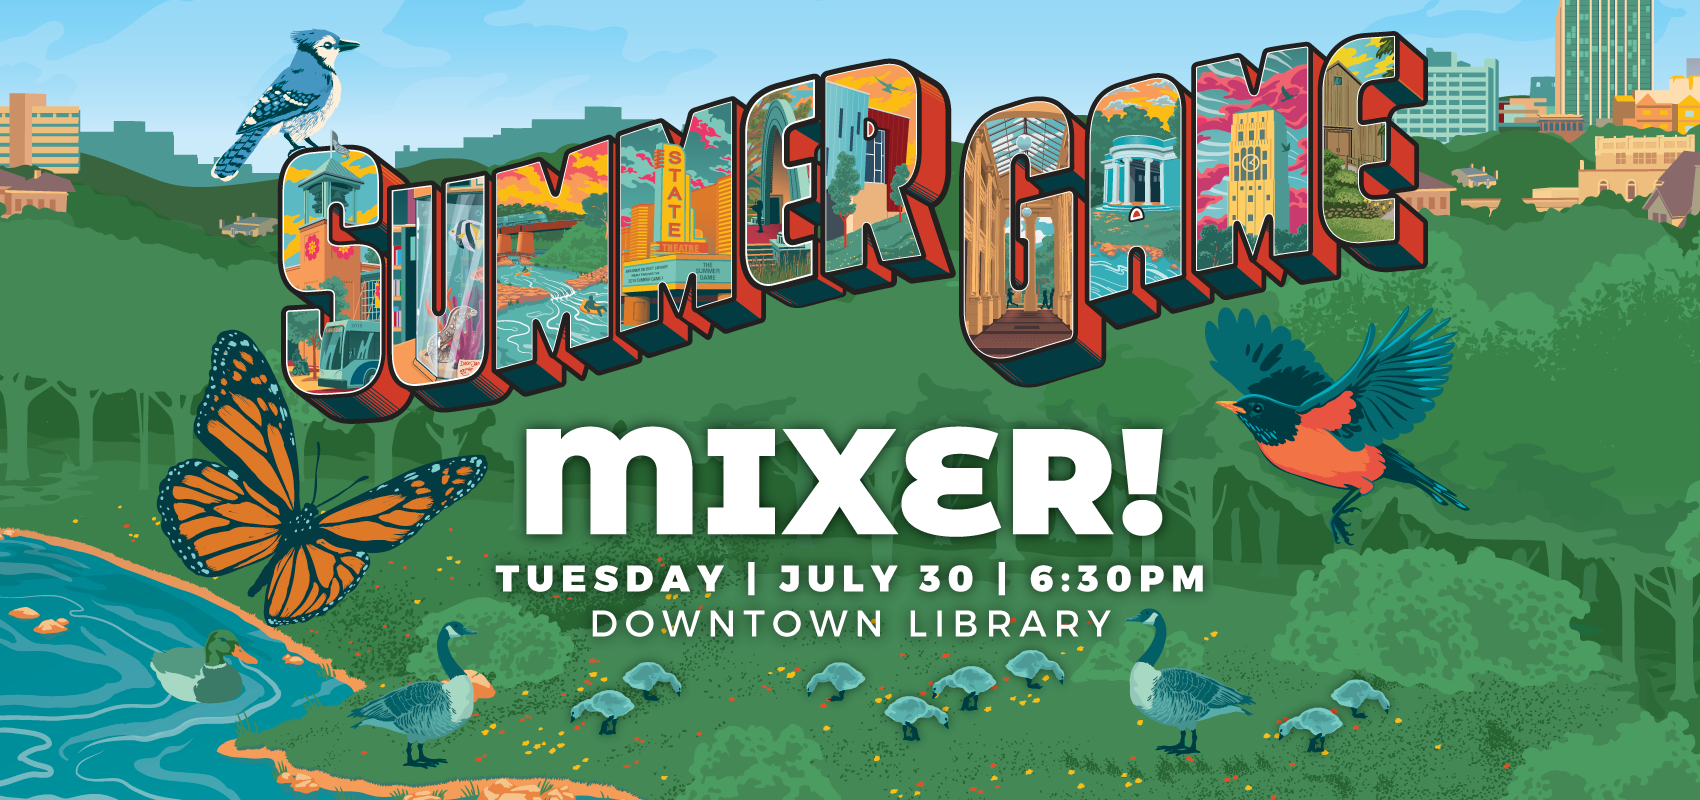 Summer Game Mixer - Tuesday July 30. .